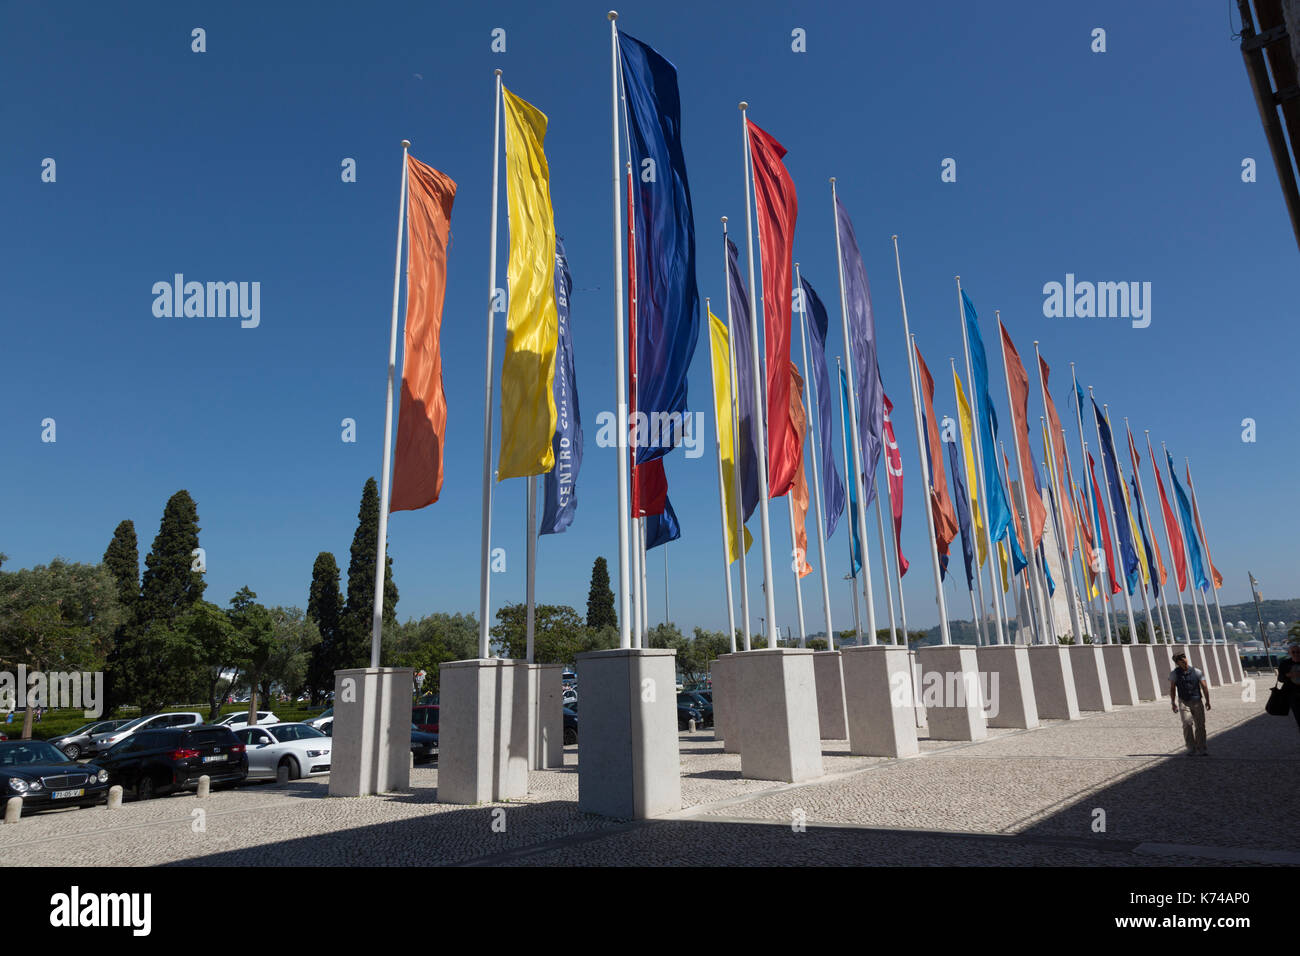 An array of brightly coloured flags flying from flag poles outside the cultural centre Lisbon Portugal - Stock Image